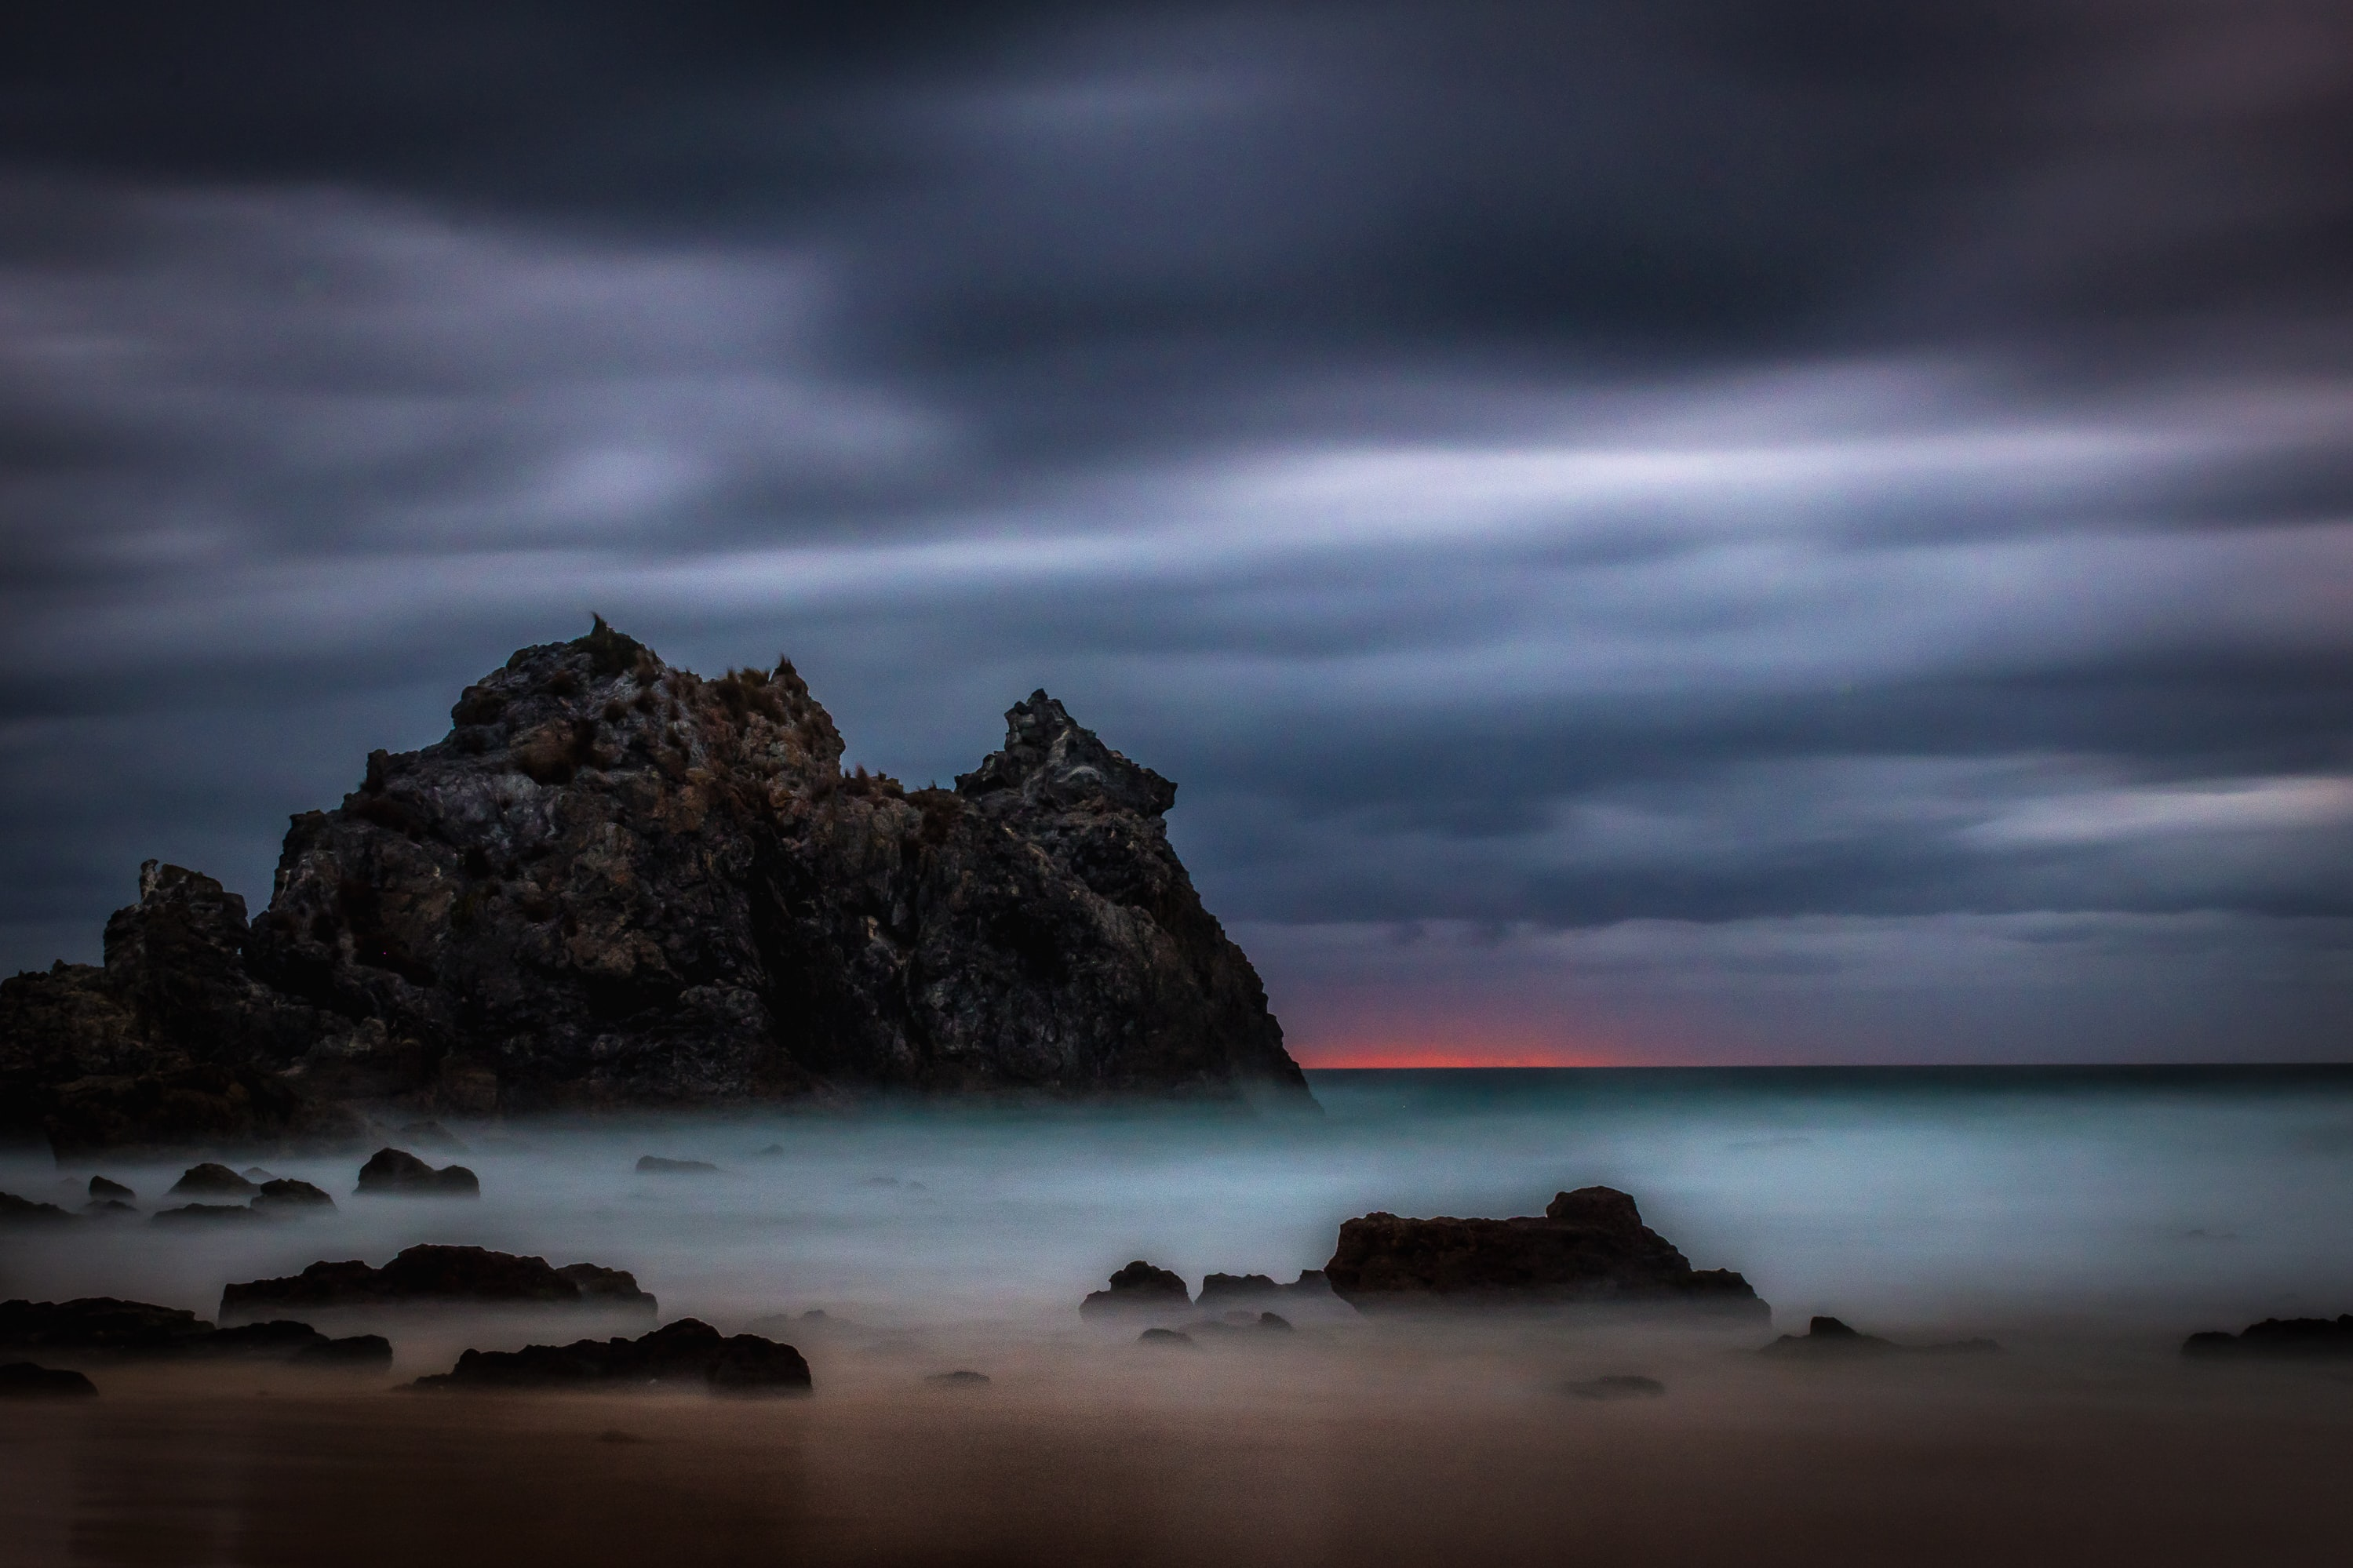 landscape photography of sea and rock formations